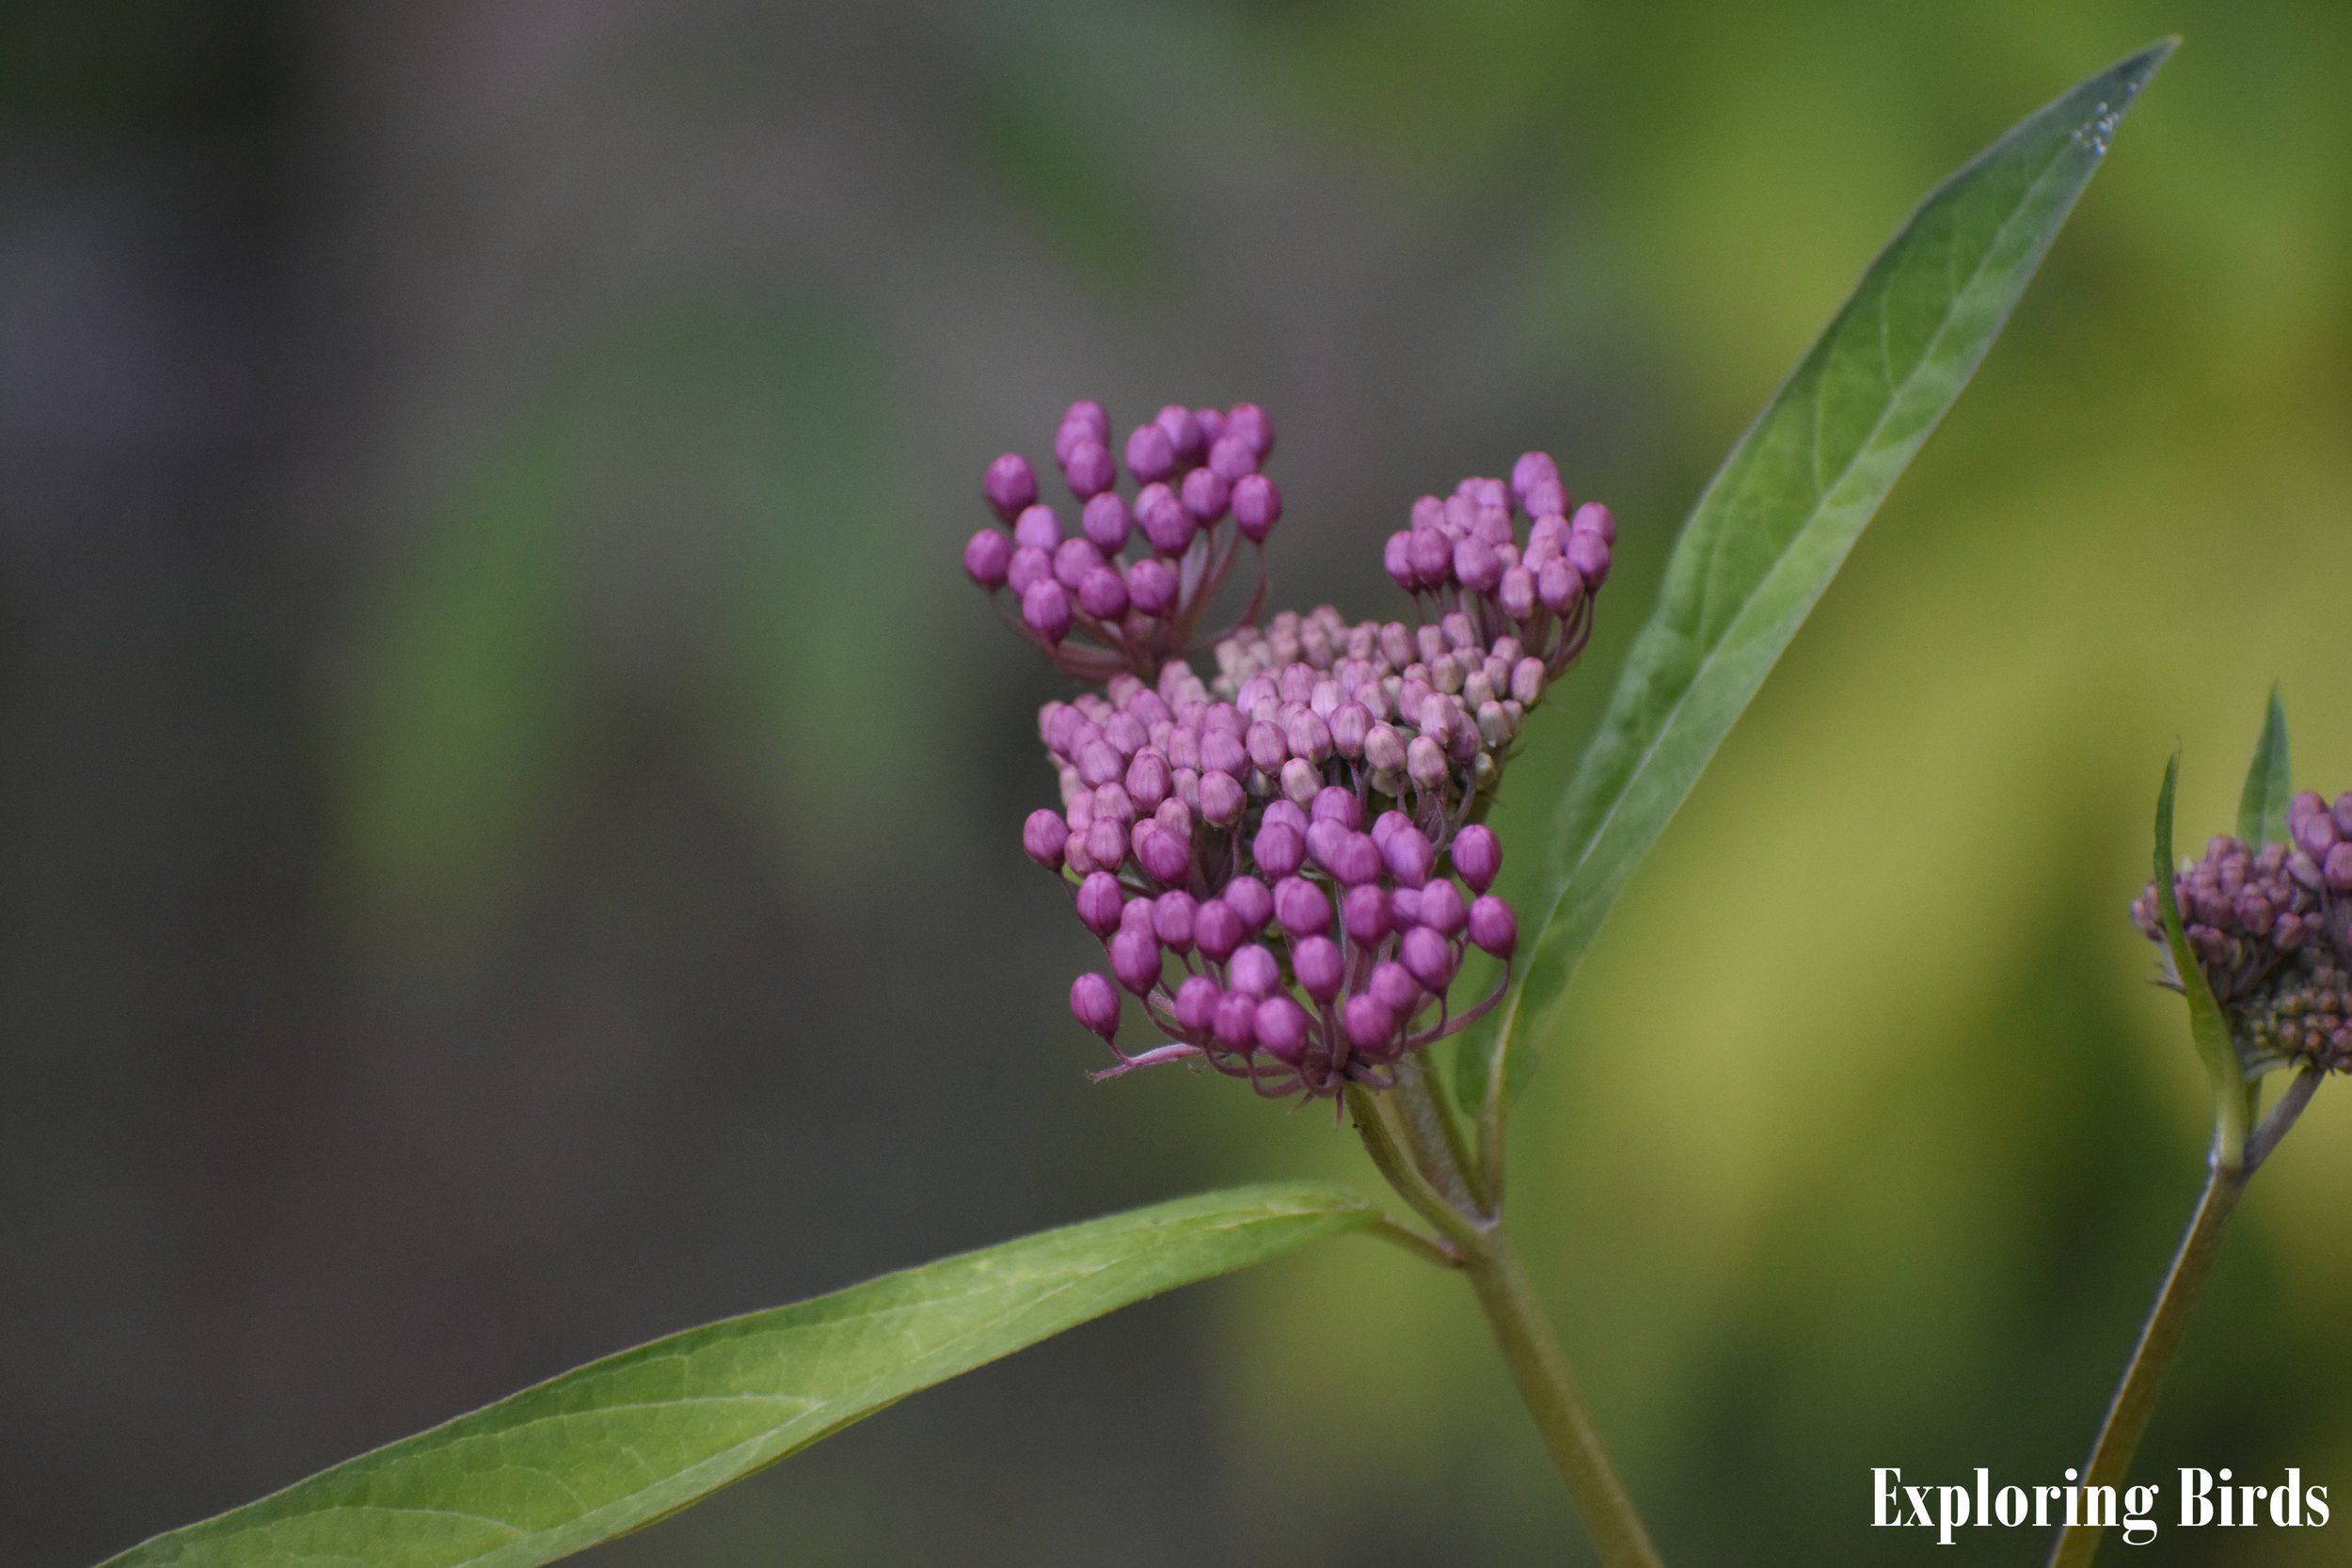 Swamp Milkweed is a flower that attracts birds